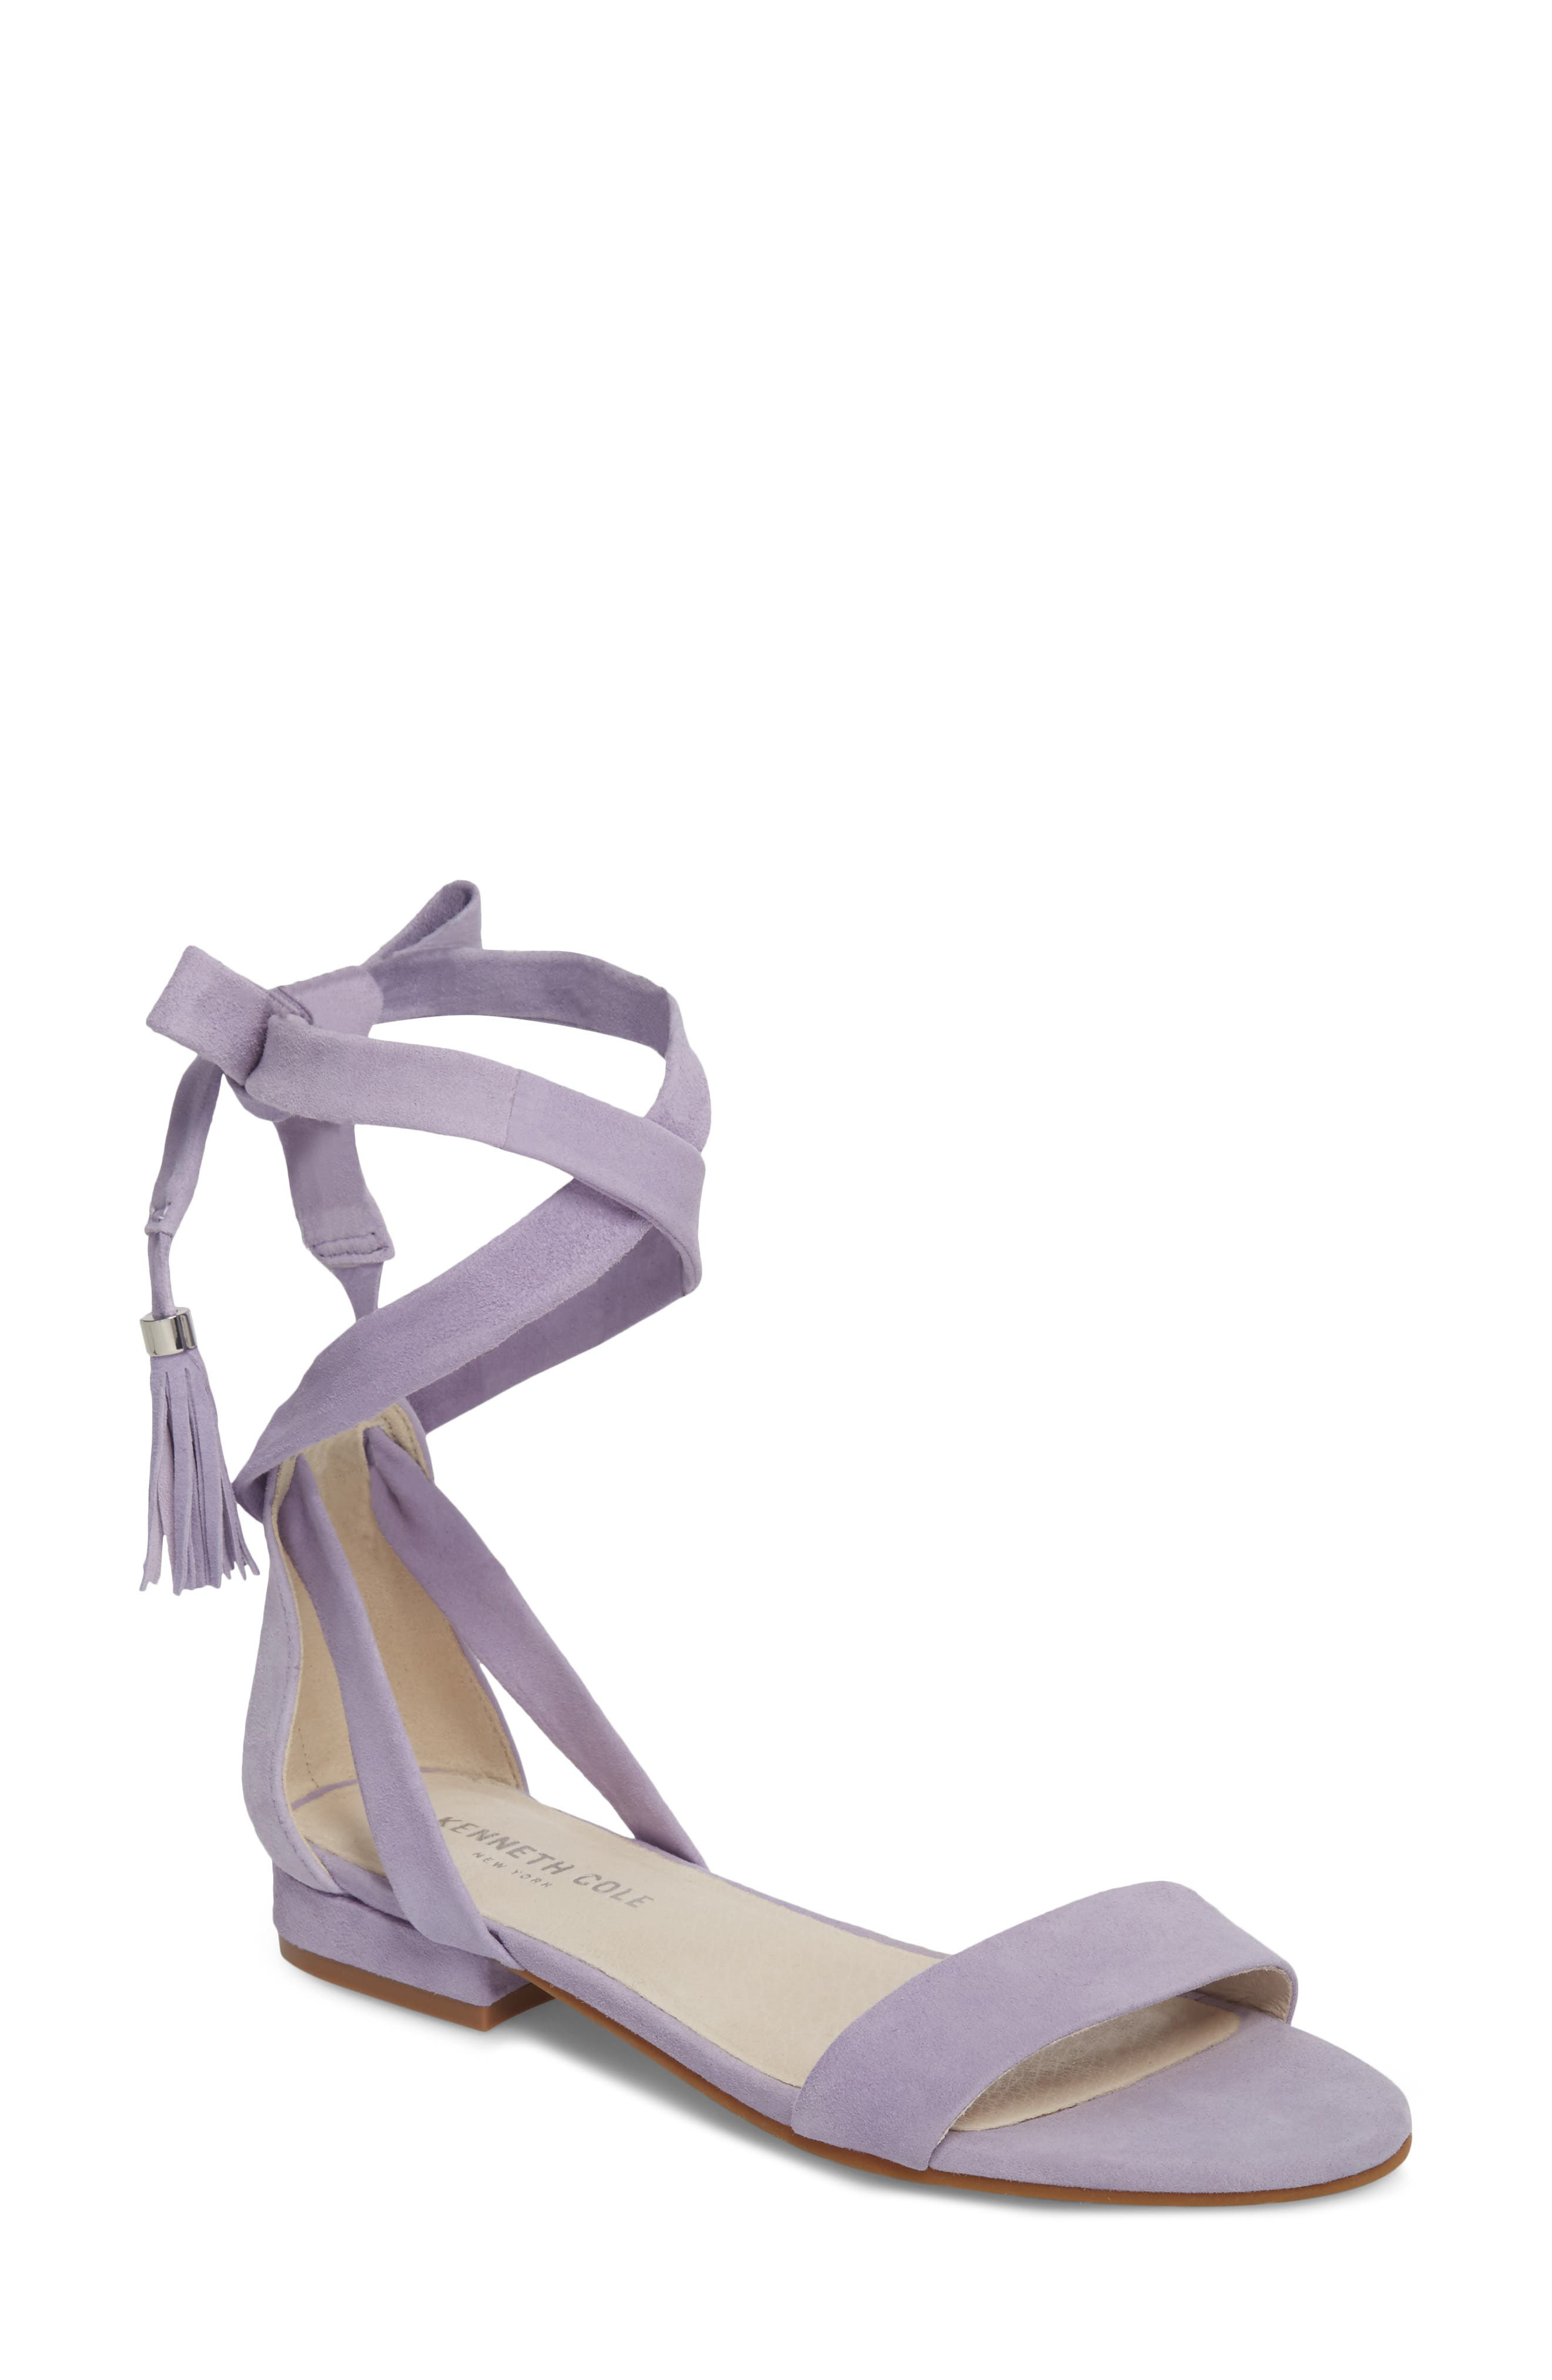 Valen Tassel Lace-Up Sandal,                         Main,                         color, 530